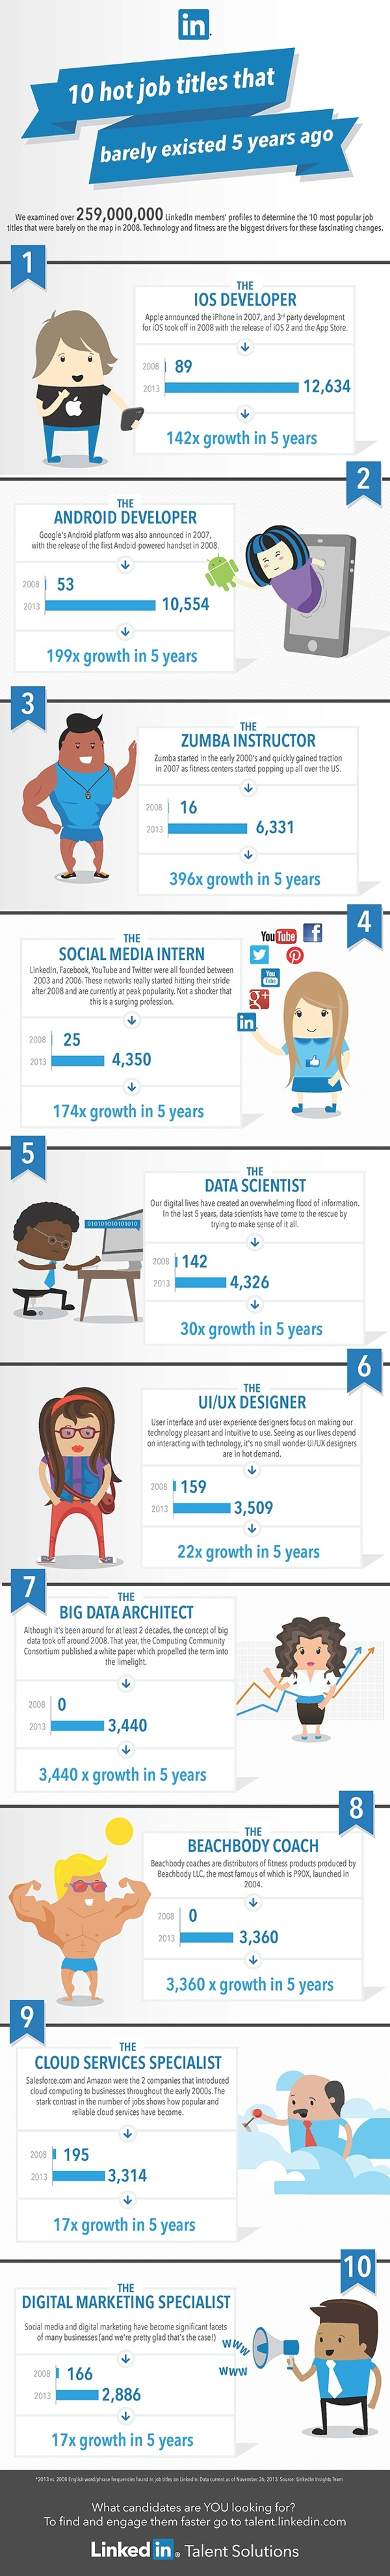 LinkedIn_top jobs_visually